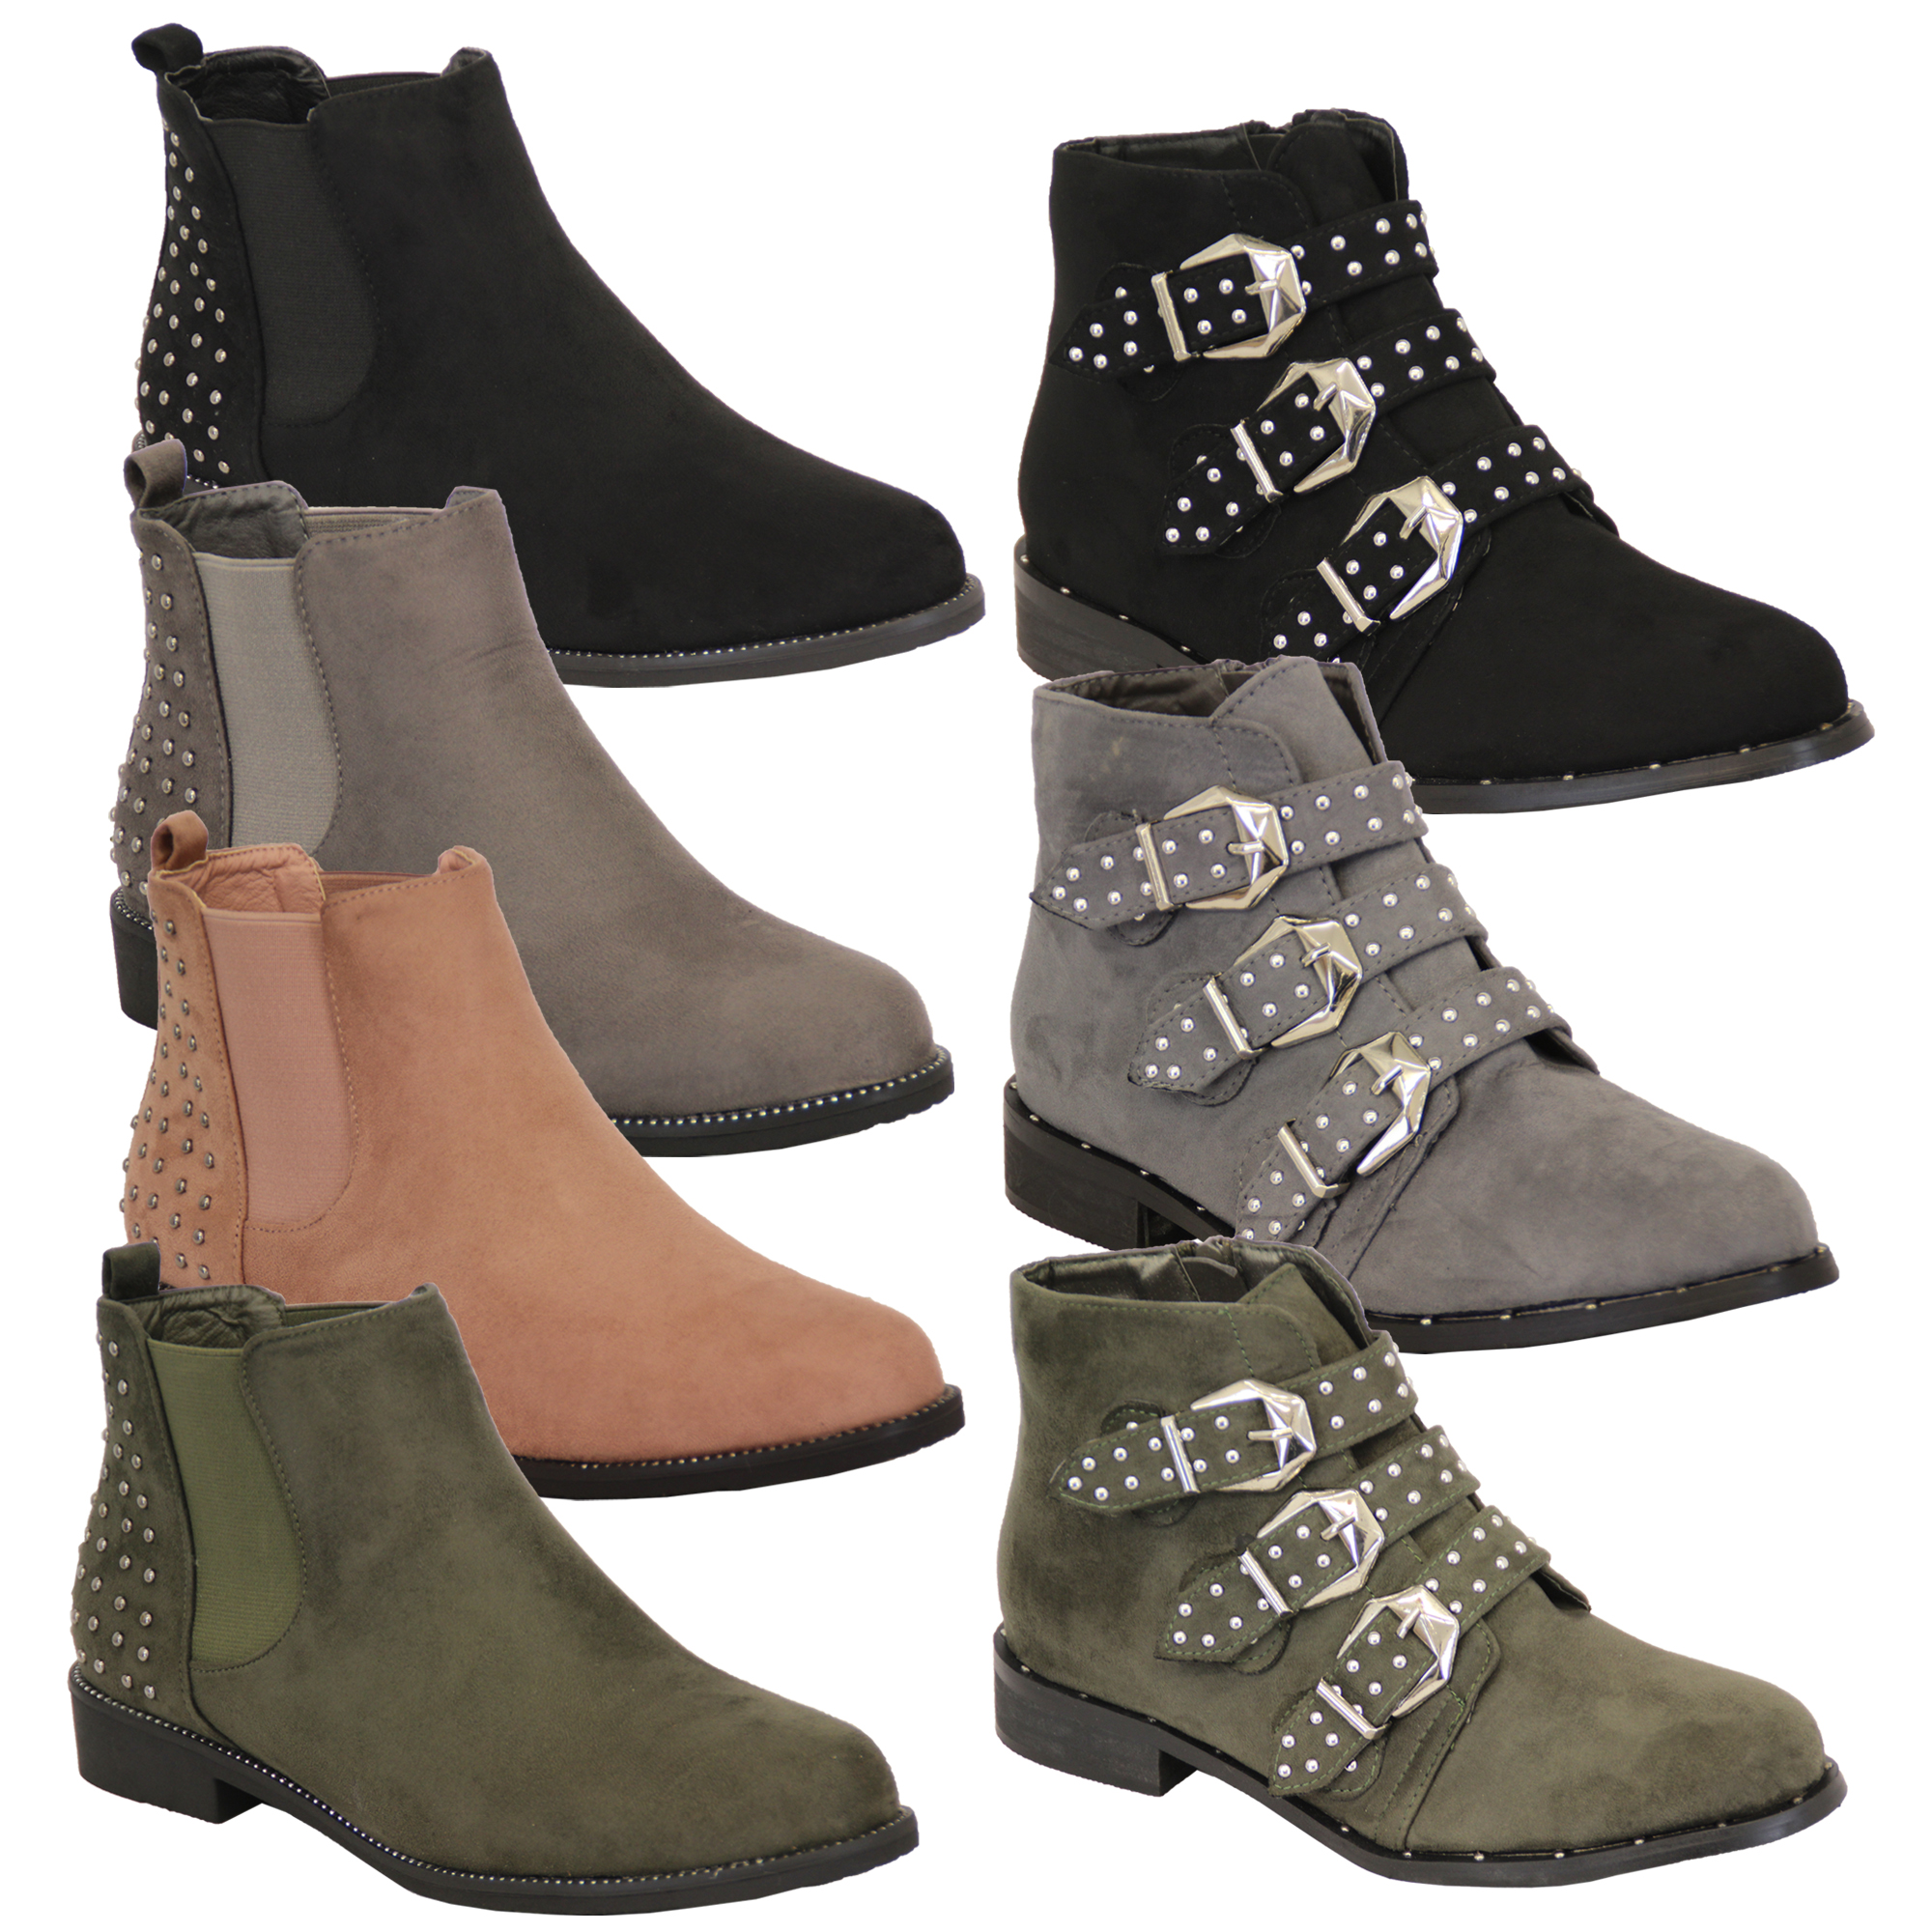 Ladies-Chelsea-Biker-Boots-Womens-Suede-Look-Studded-High-Ankle-Zip-Buckle-Shoes thumbnail 6